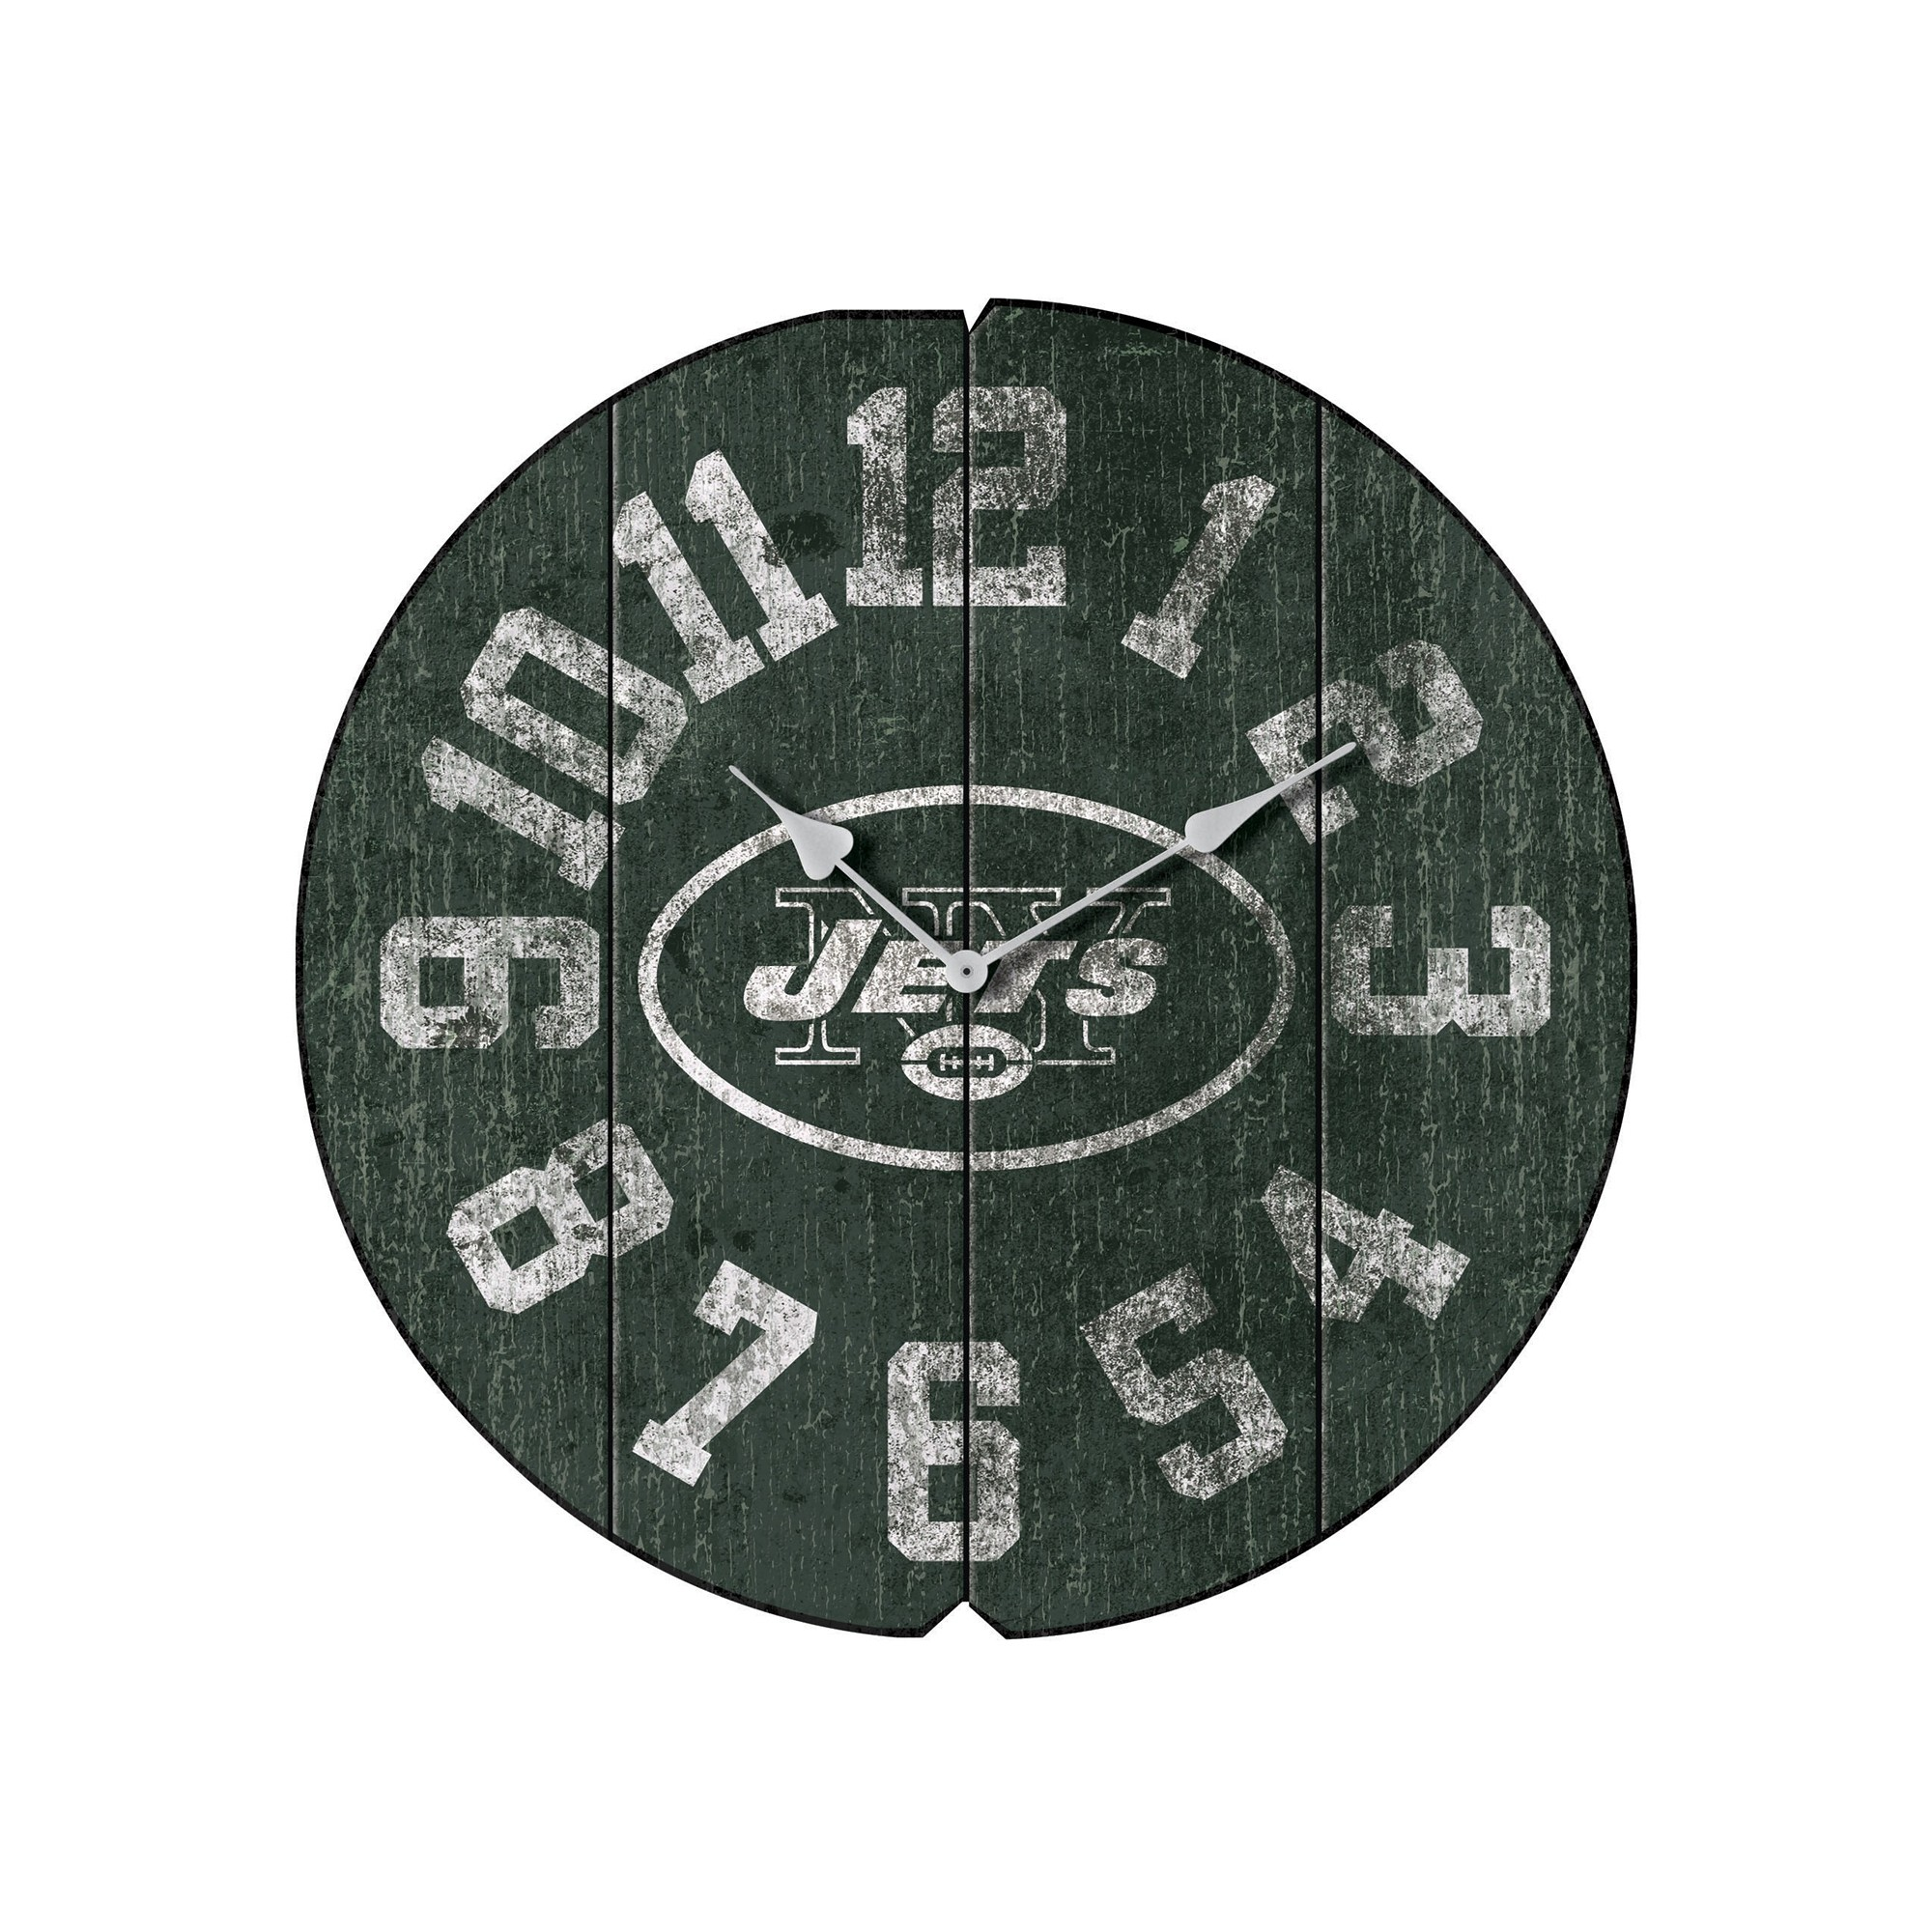 Nfl Football New York Jets Clocks - 172-1012 - New York Jets Vintage Round Clock 172-1012